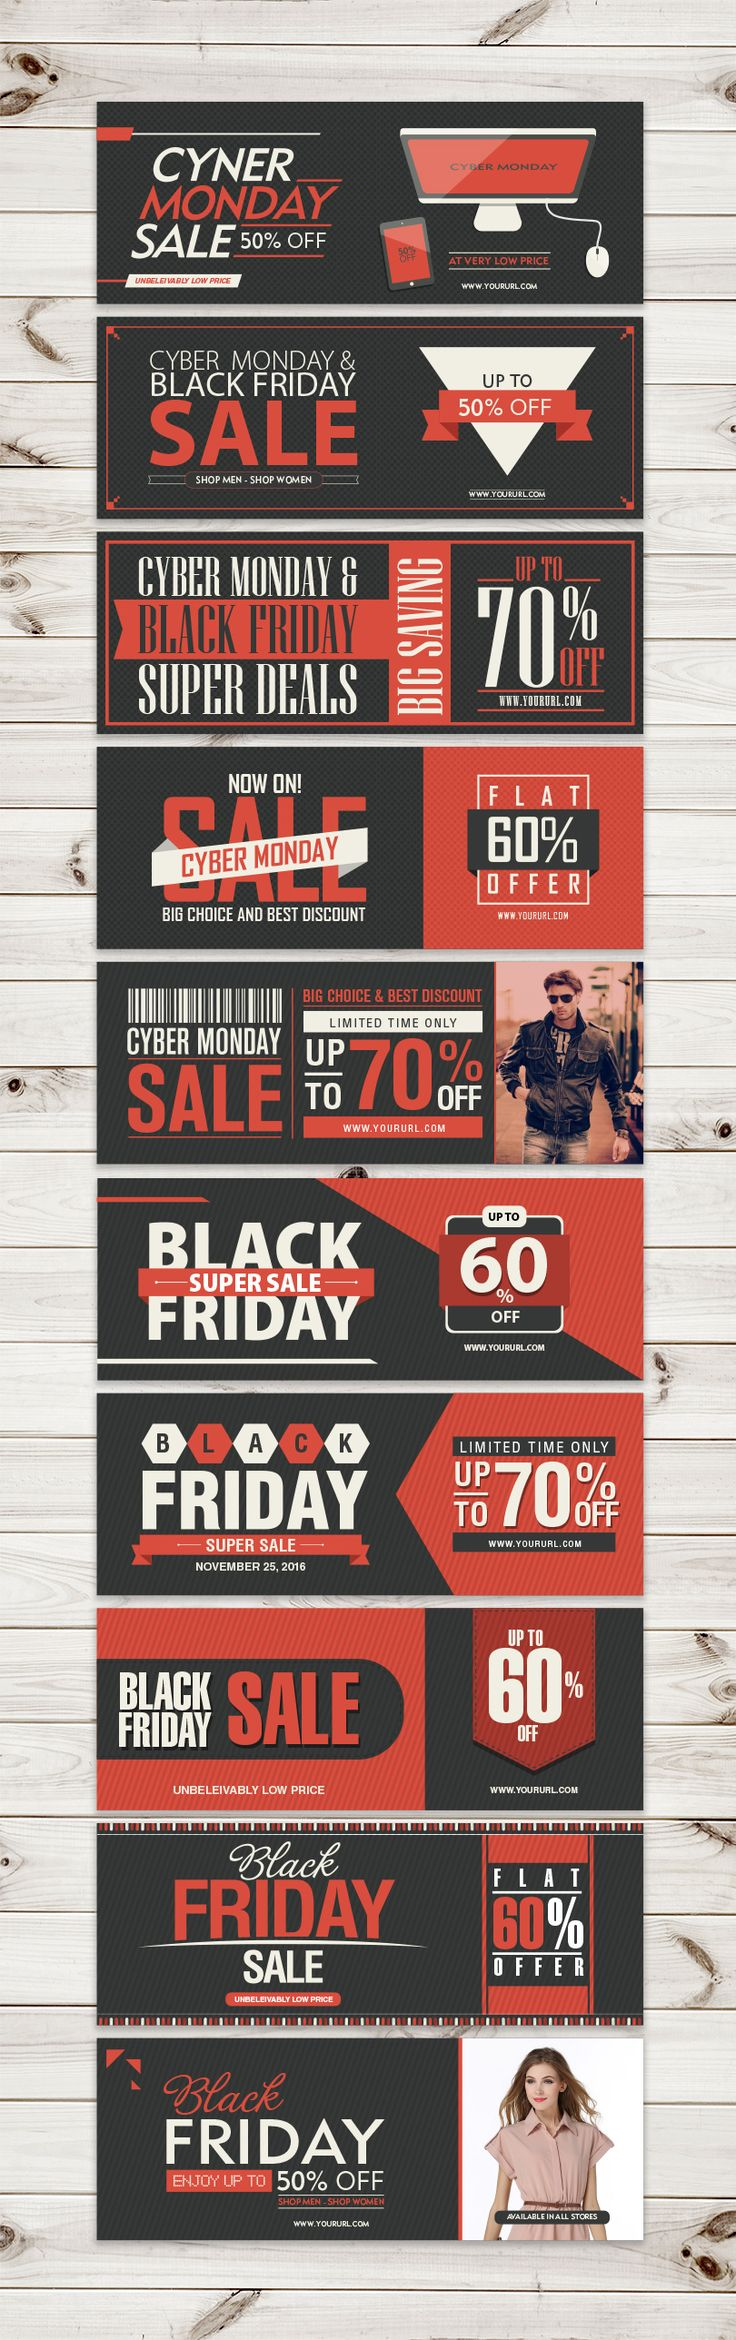 Black Friday & Cyber Monday Web Banners in Ai, EPS, CDR & PDF Format                                                                                                                                                                                 More